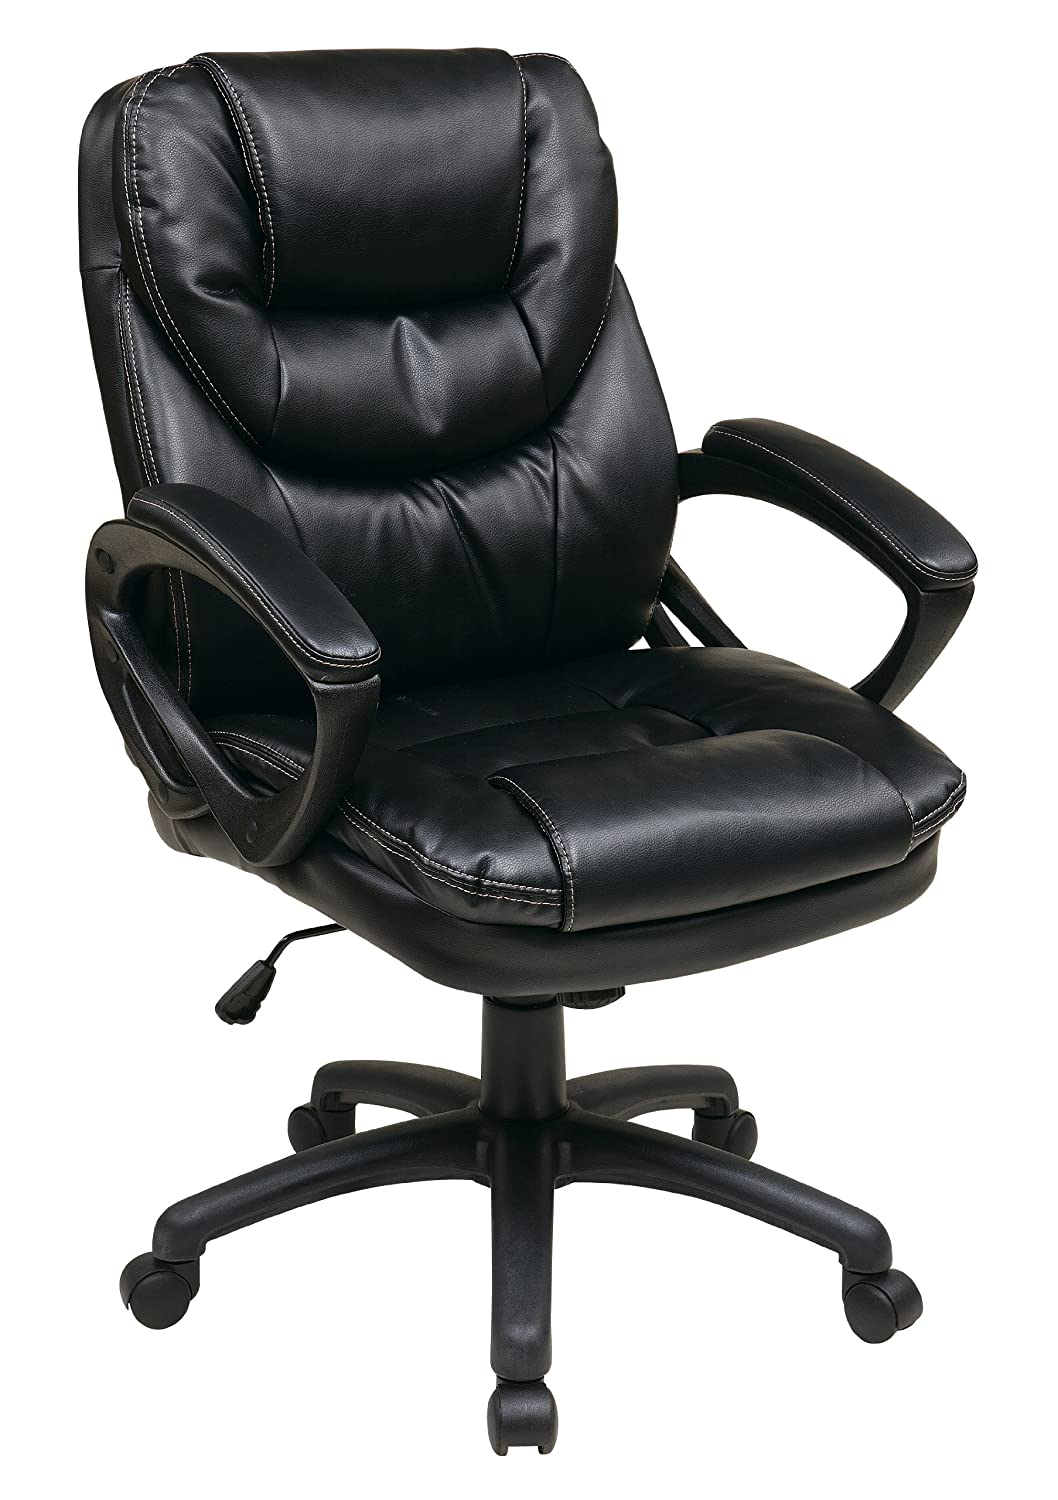 Best fice Chair for Lumbar Support Reviews and parison